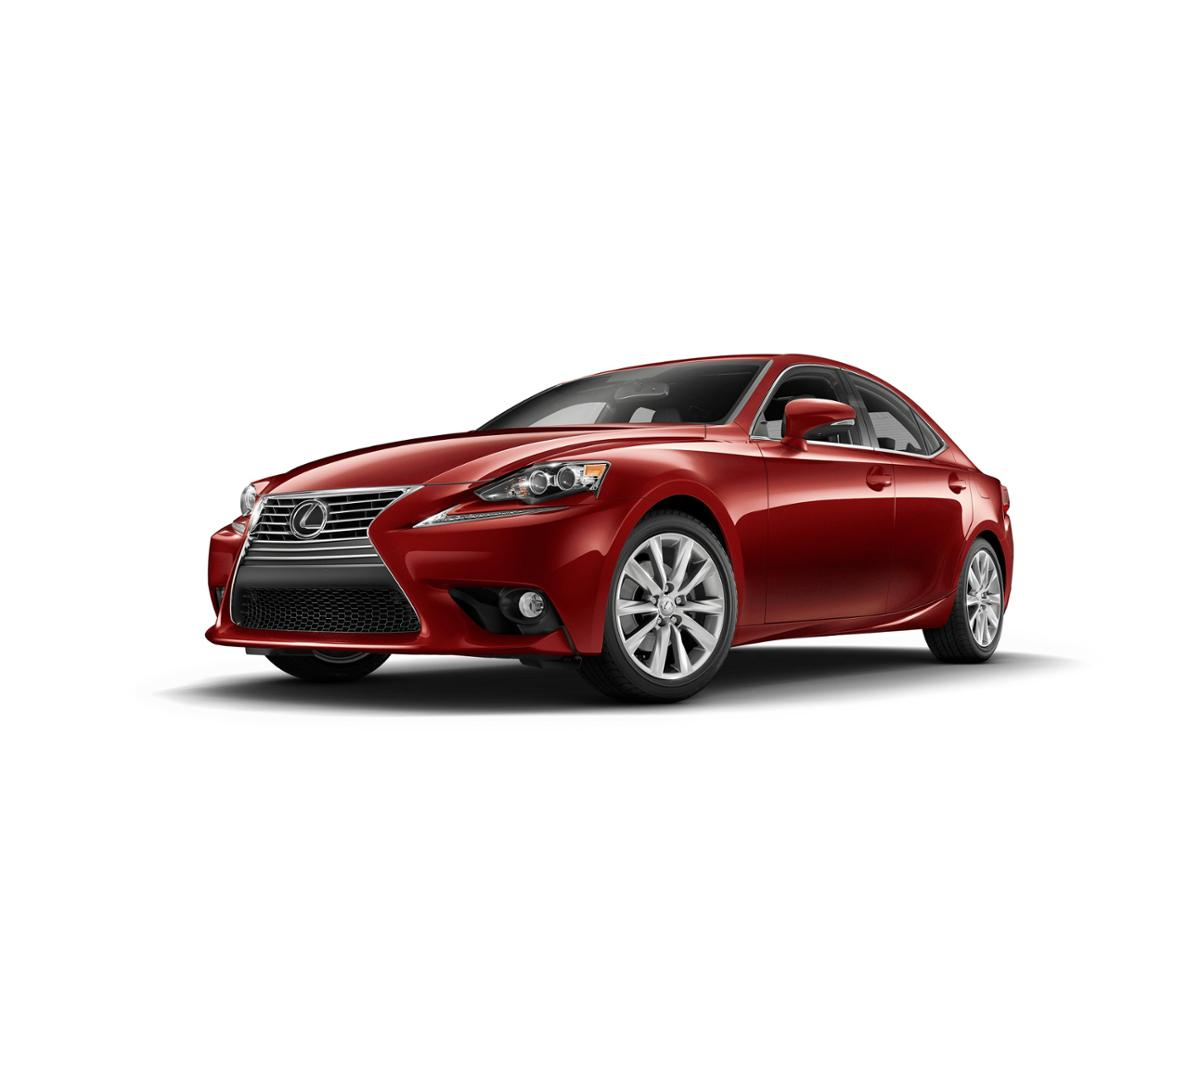 escondido redline 2016 lexus is turbo new car for sale e8060. Black Bedroom Furniture Sets. Home Design Ideas